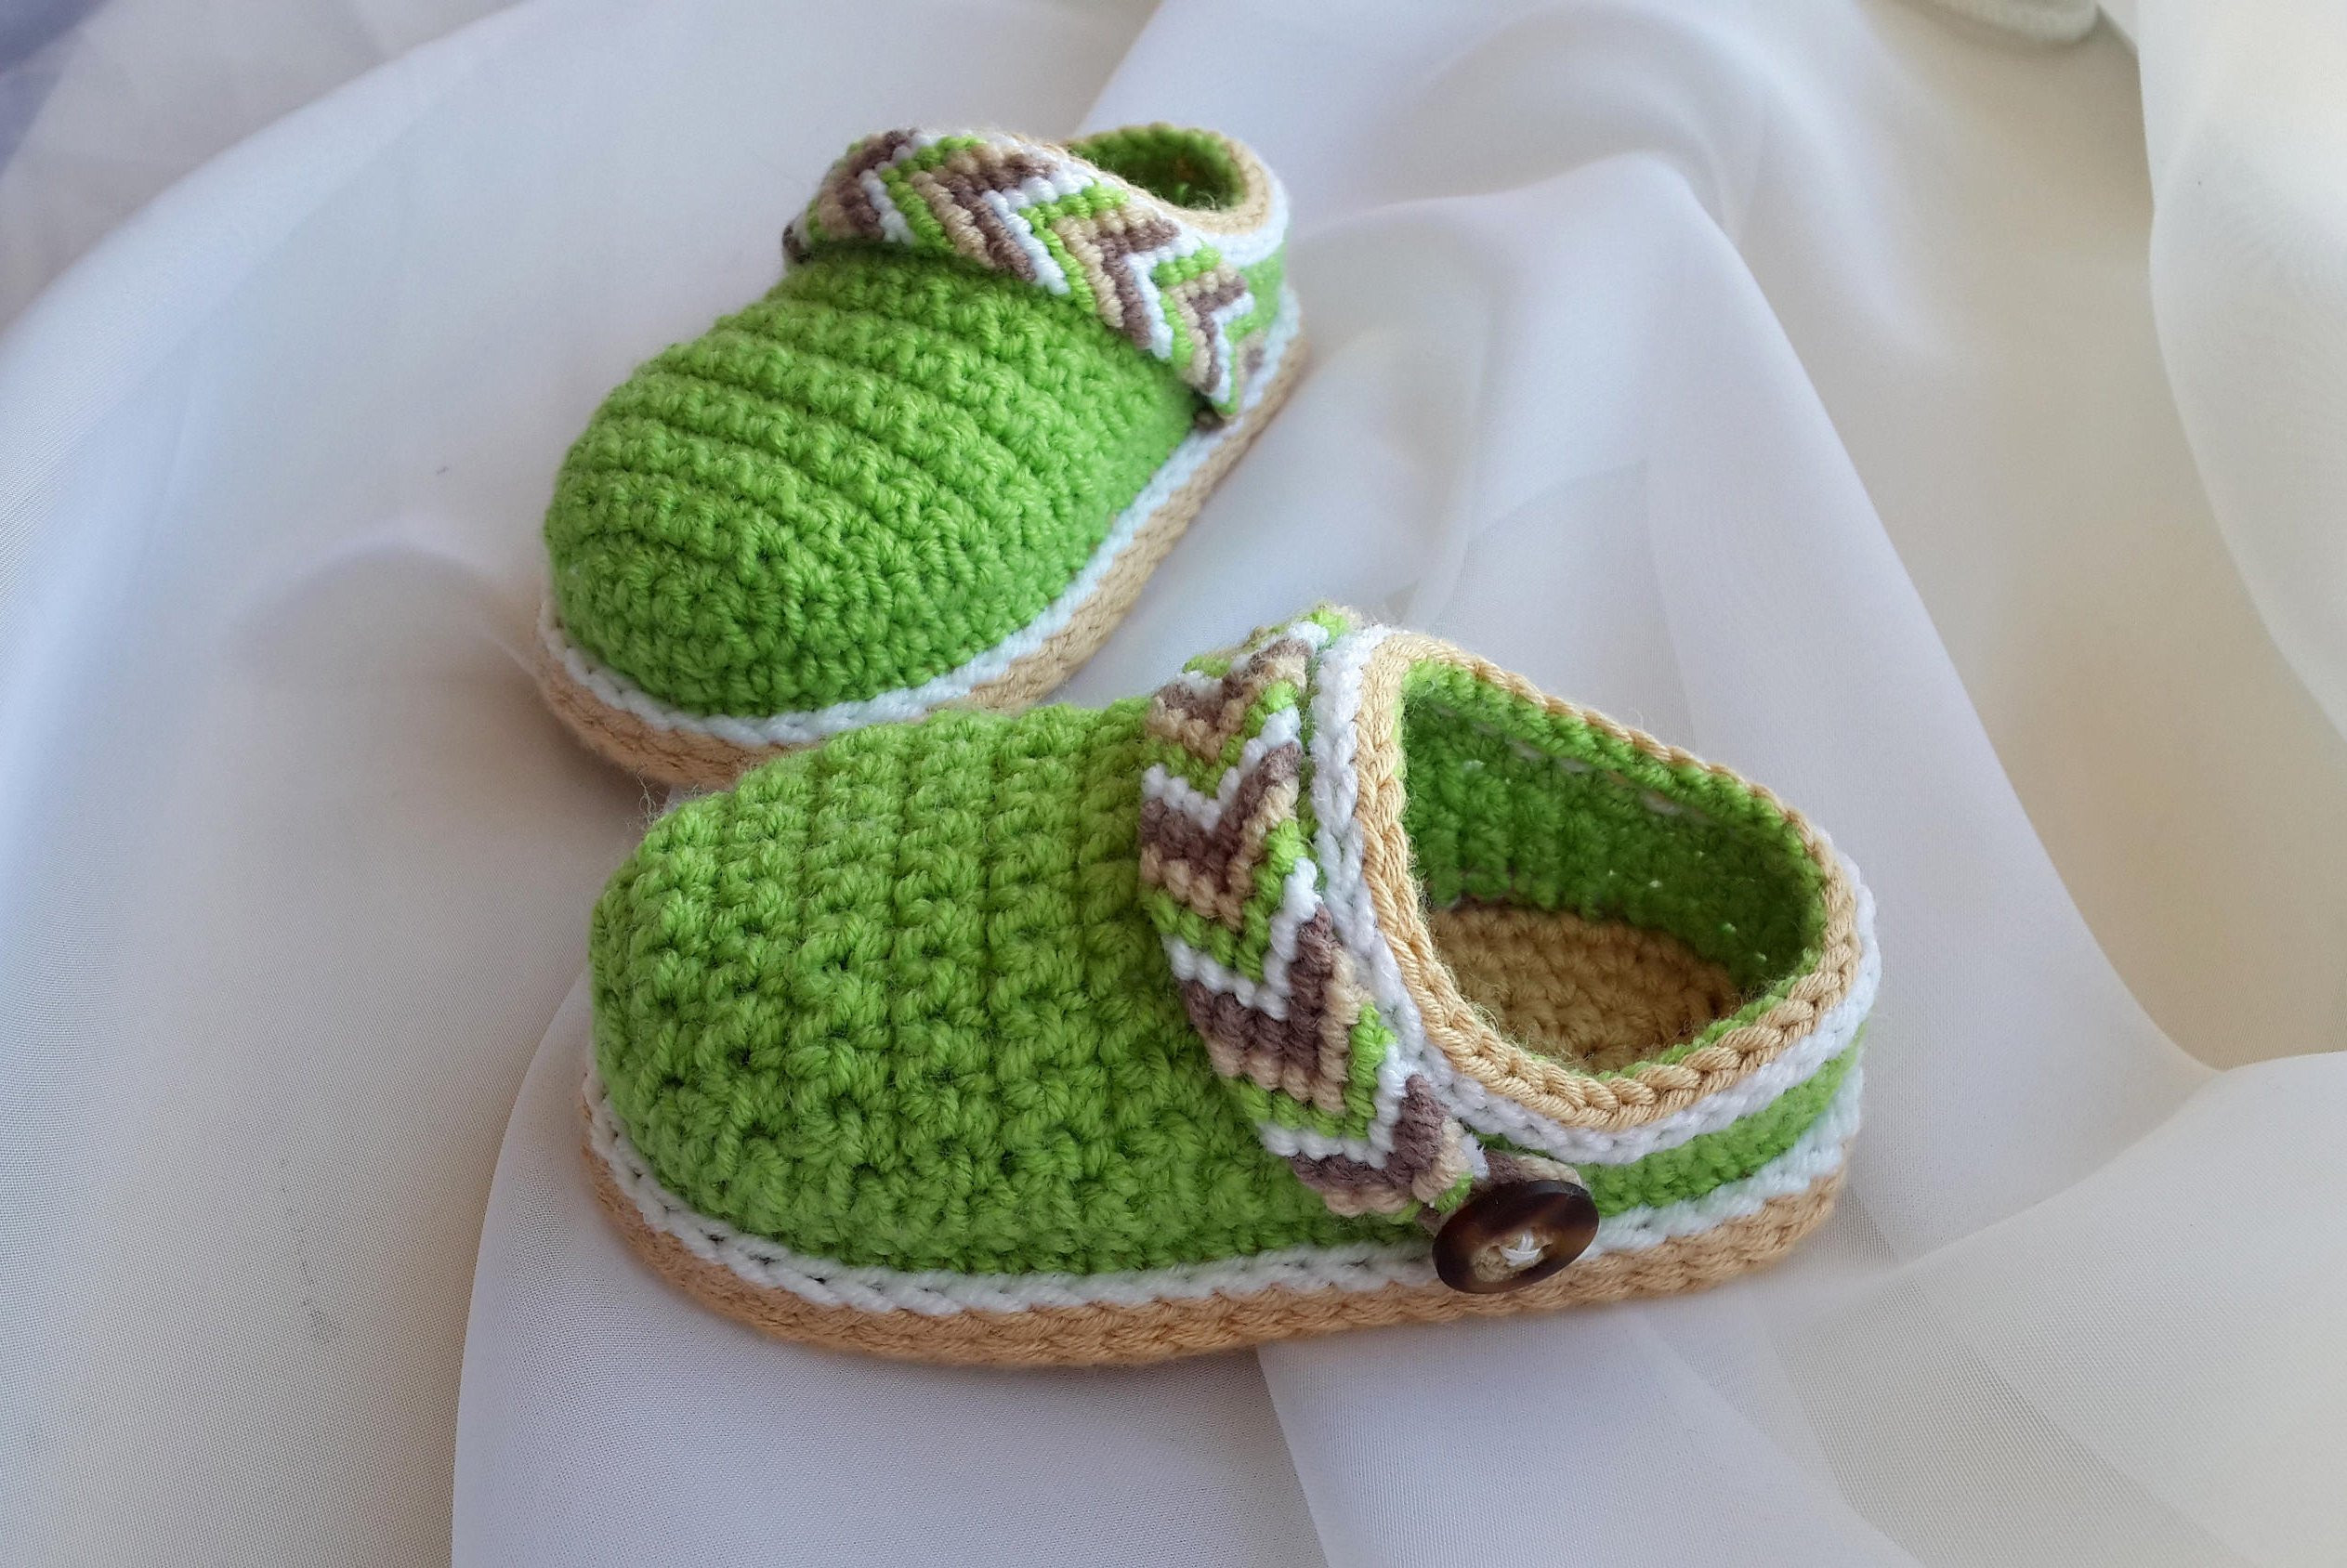 Unique Crochet Pattern Baby Shoes Crochet Booties Baby Clogs Crochet Baby Shoes Pattern Of Delightful 50 Pictures Crochet Baby Shoes Pattern